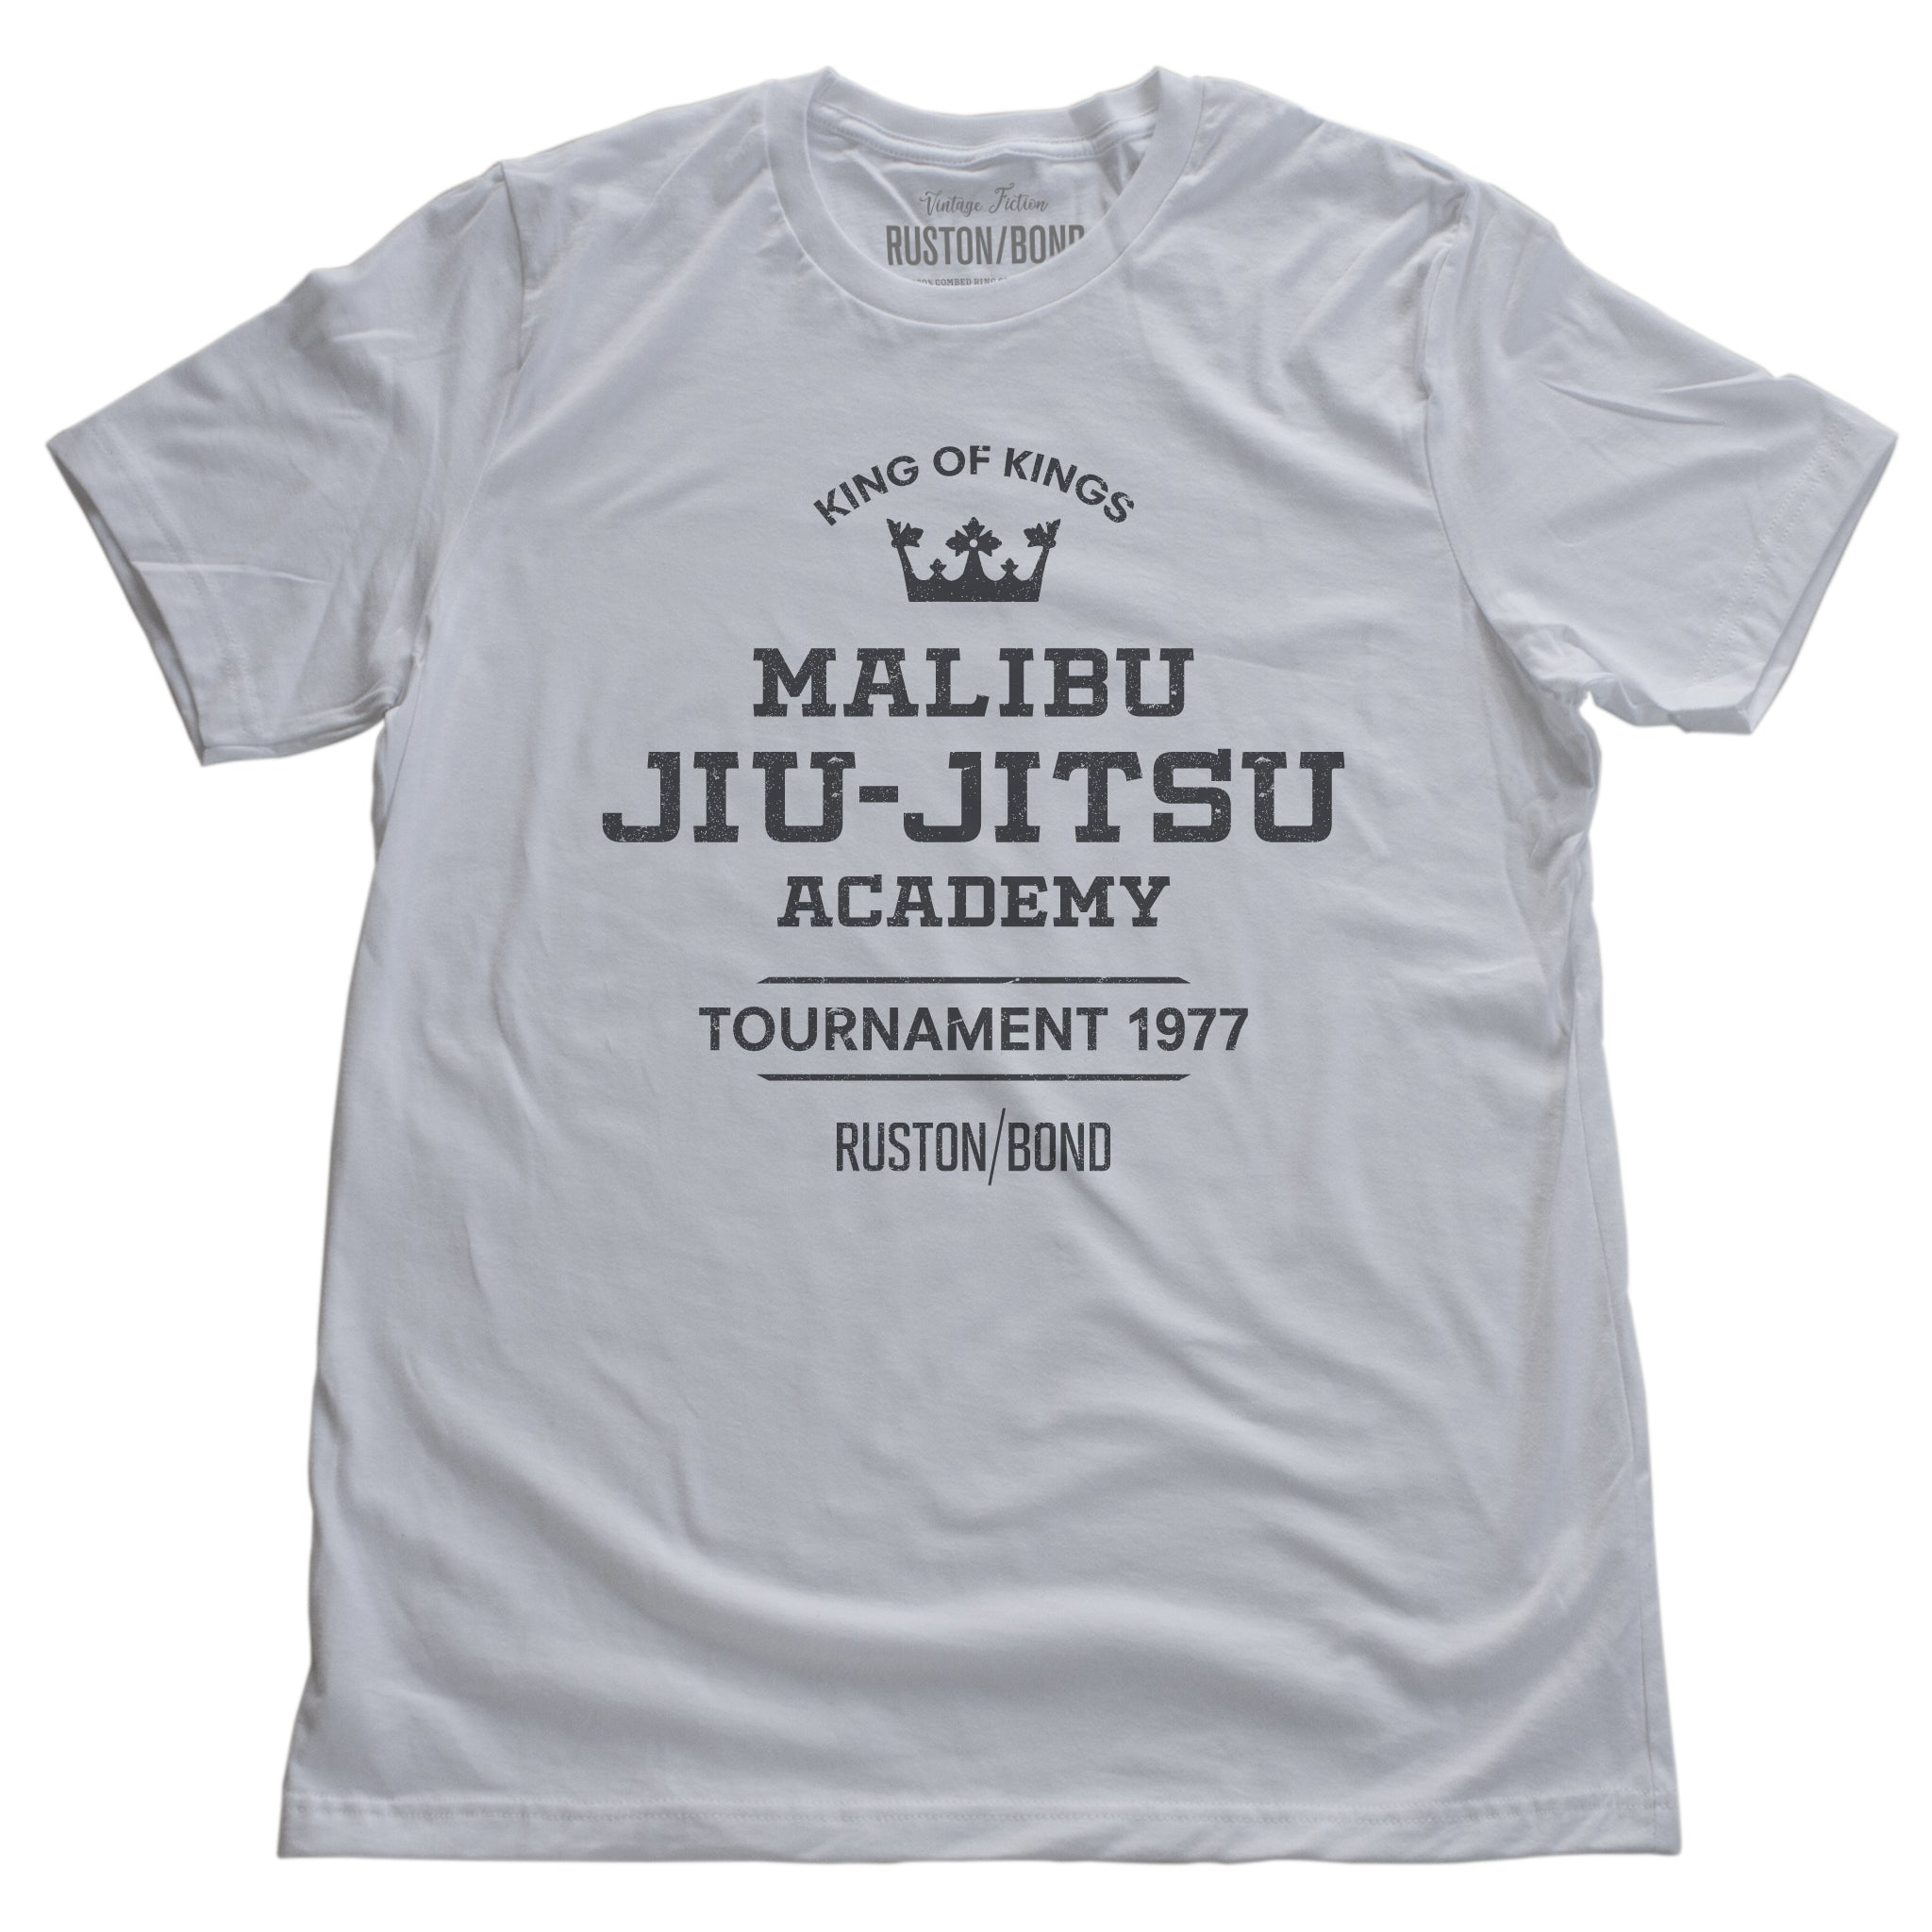 A fashionable, vintage-inspired retro t-shirt in White, featuring a graphic commemorating a sarcastic and fictitious Malibu (California) Jiu Jitsu academy and a 1977 tournament. By fashion brand Ruston/Bond, from wolfsaint.net